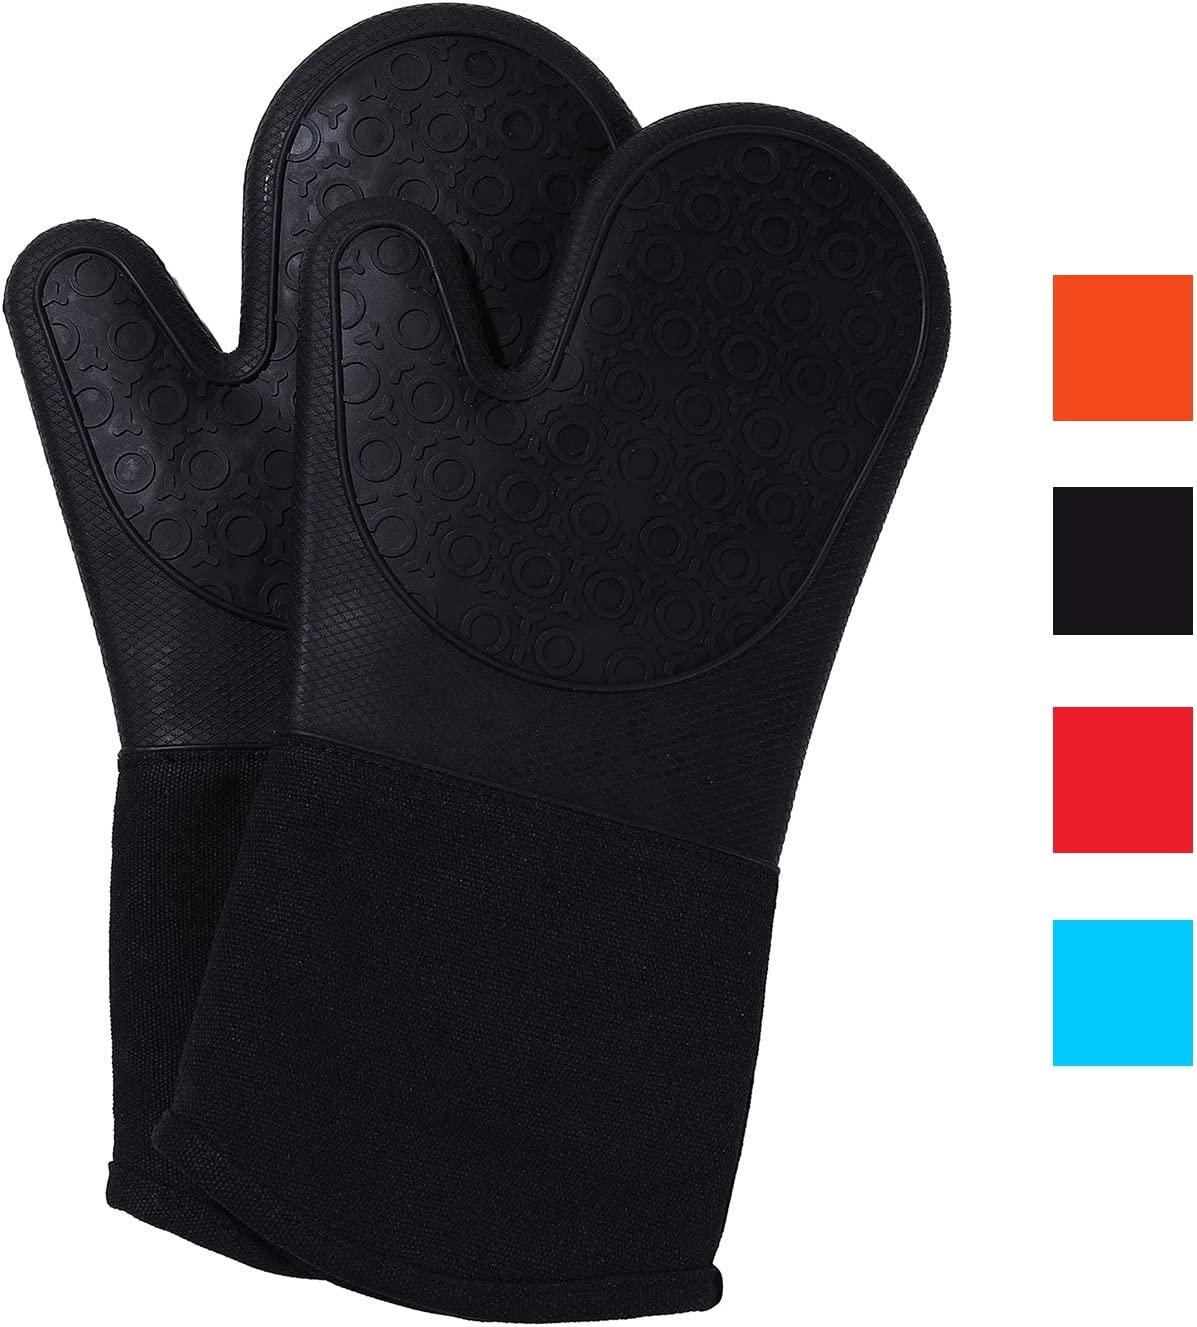 misaya Long Silicone Oven Mitts Quilted Cotton Lining Heat Resistant Kitchen Gloves with Grill Basting Brush, Black